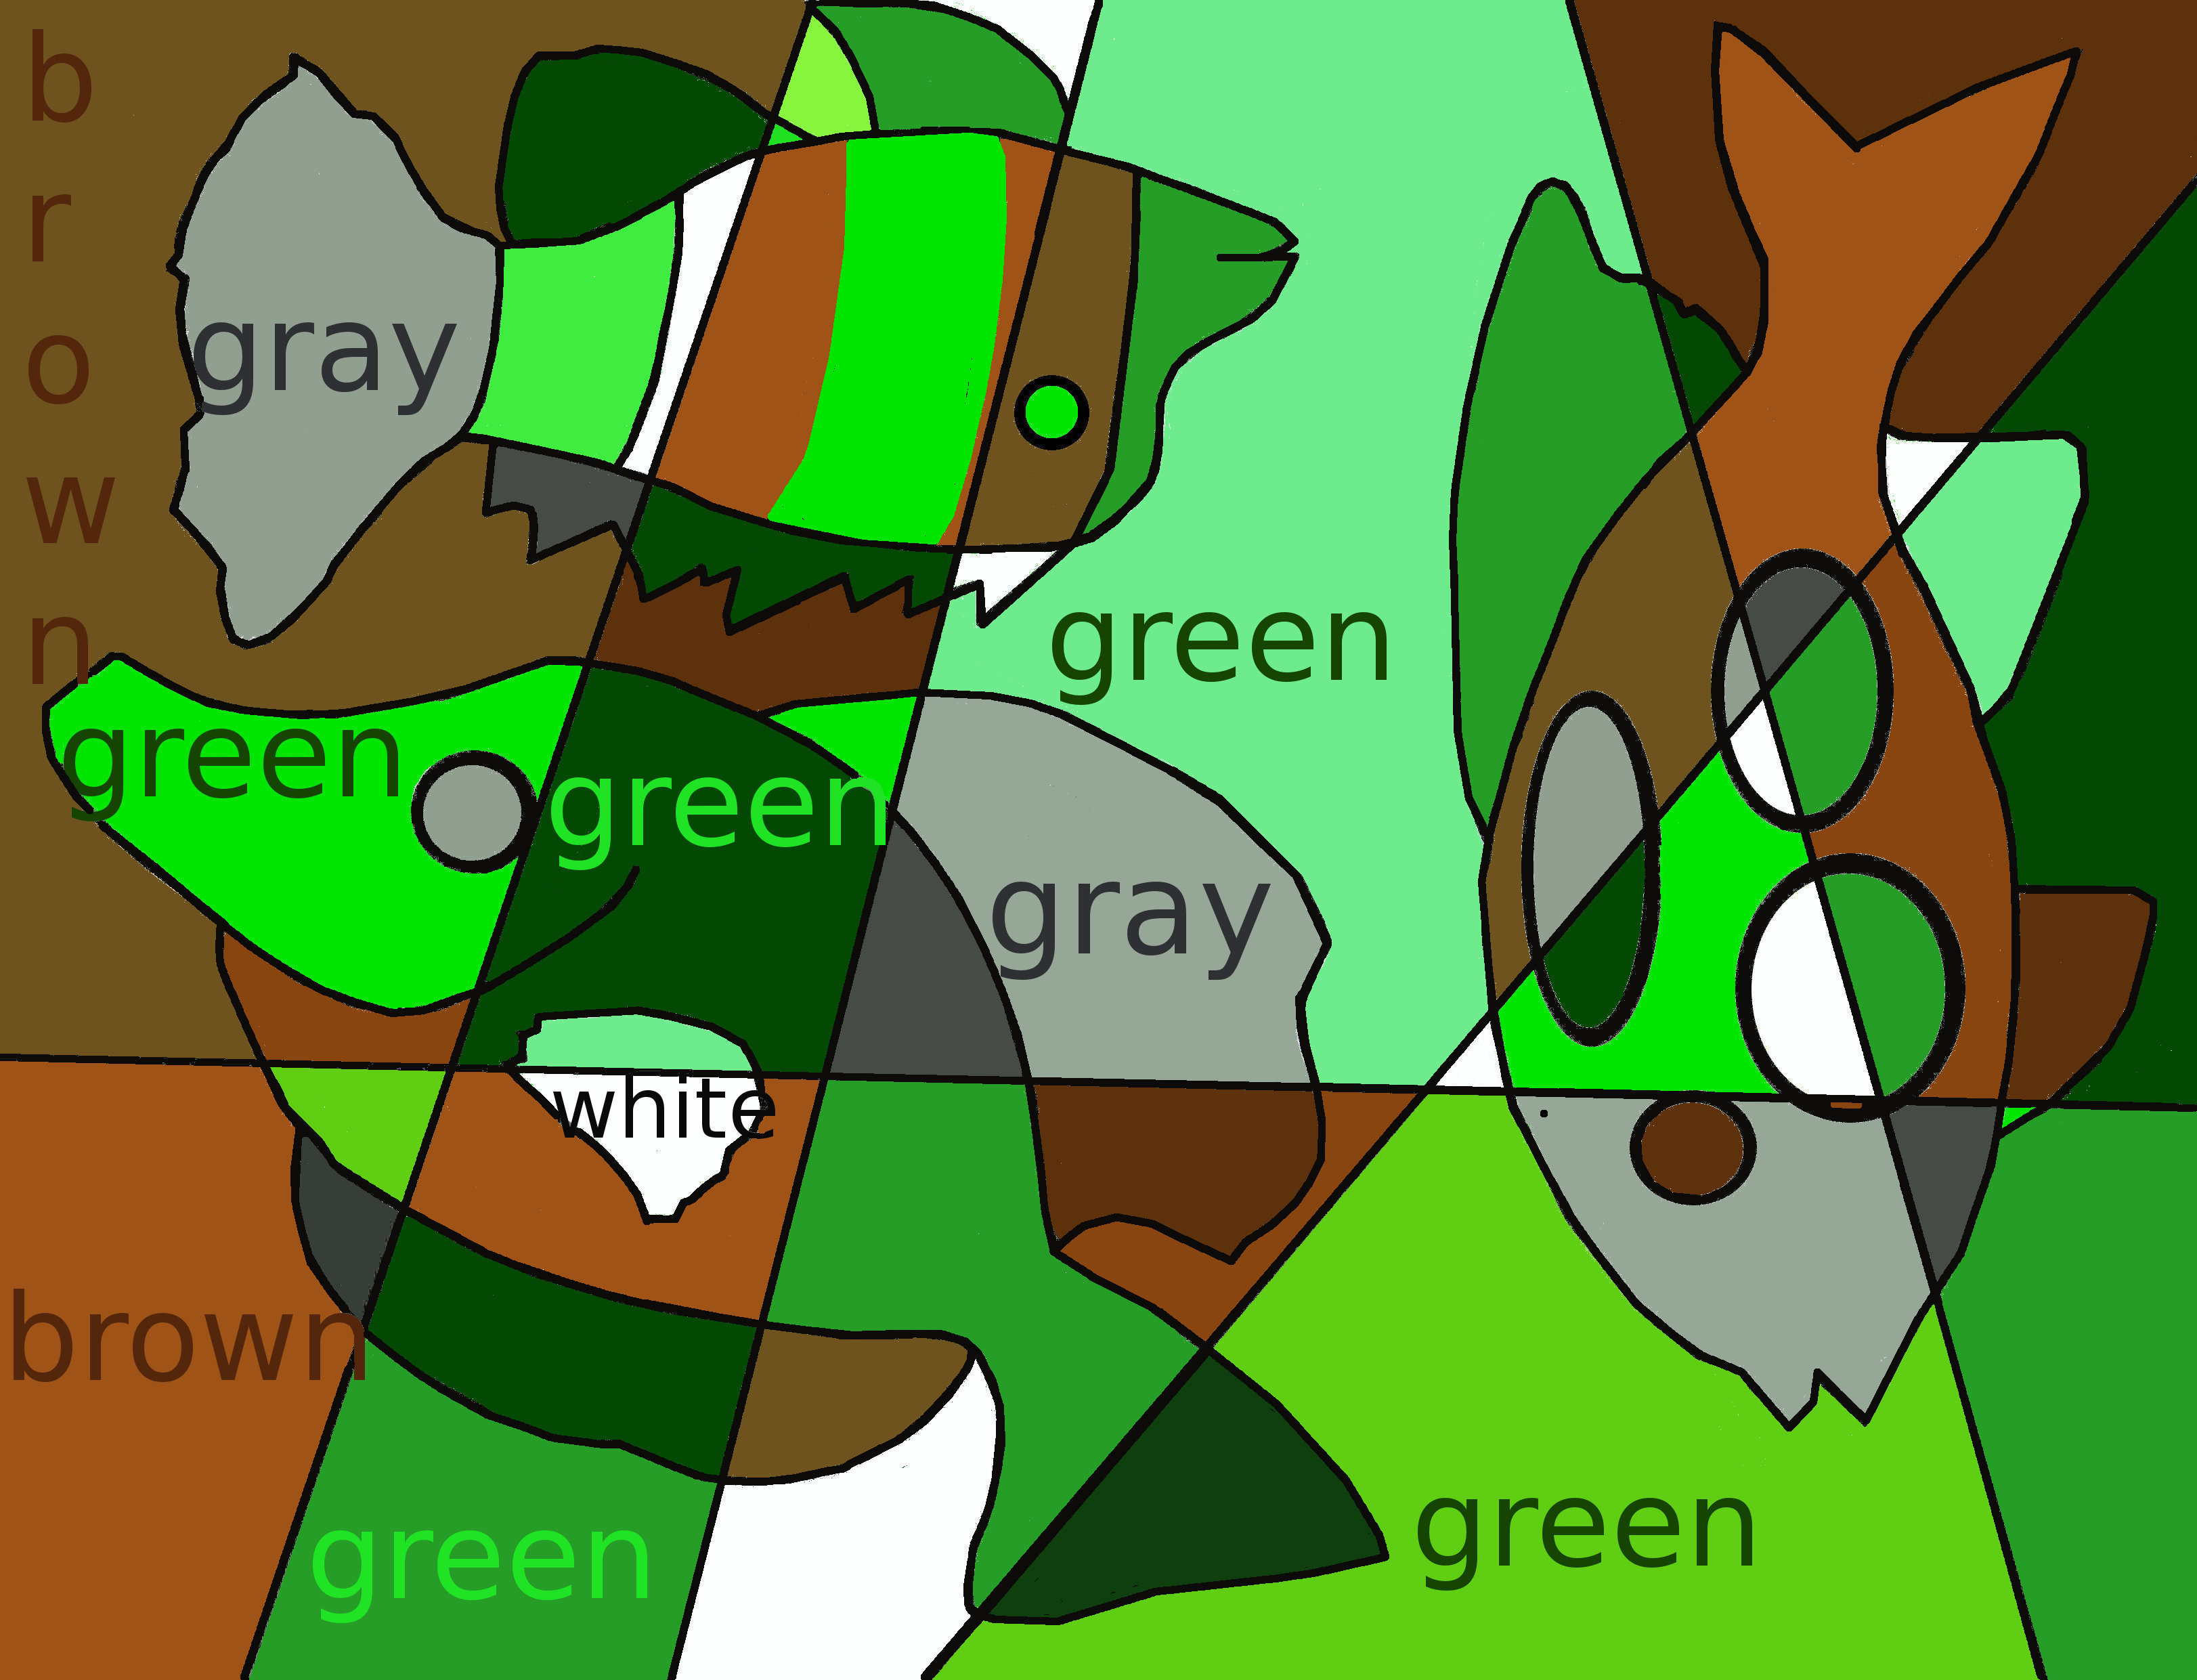 Green, gray, brown, and white